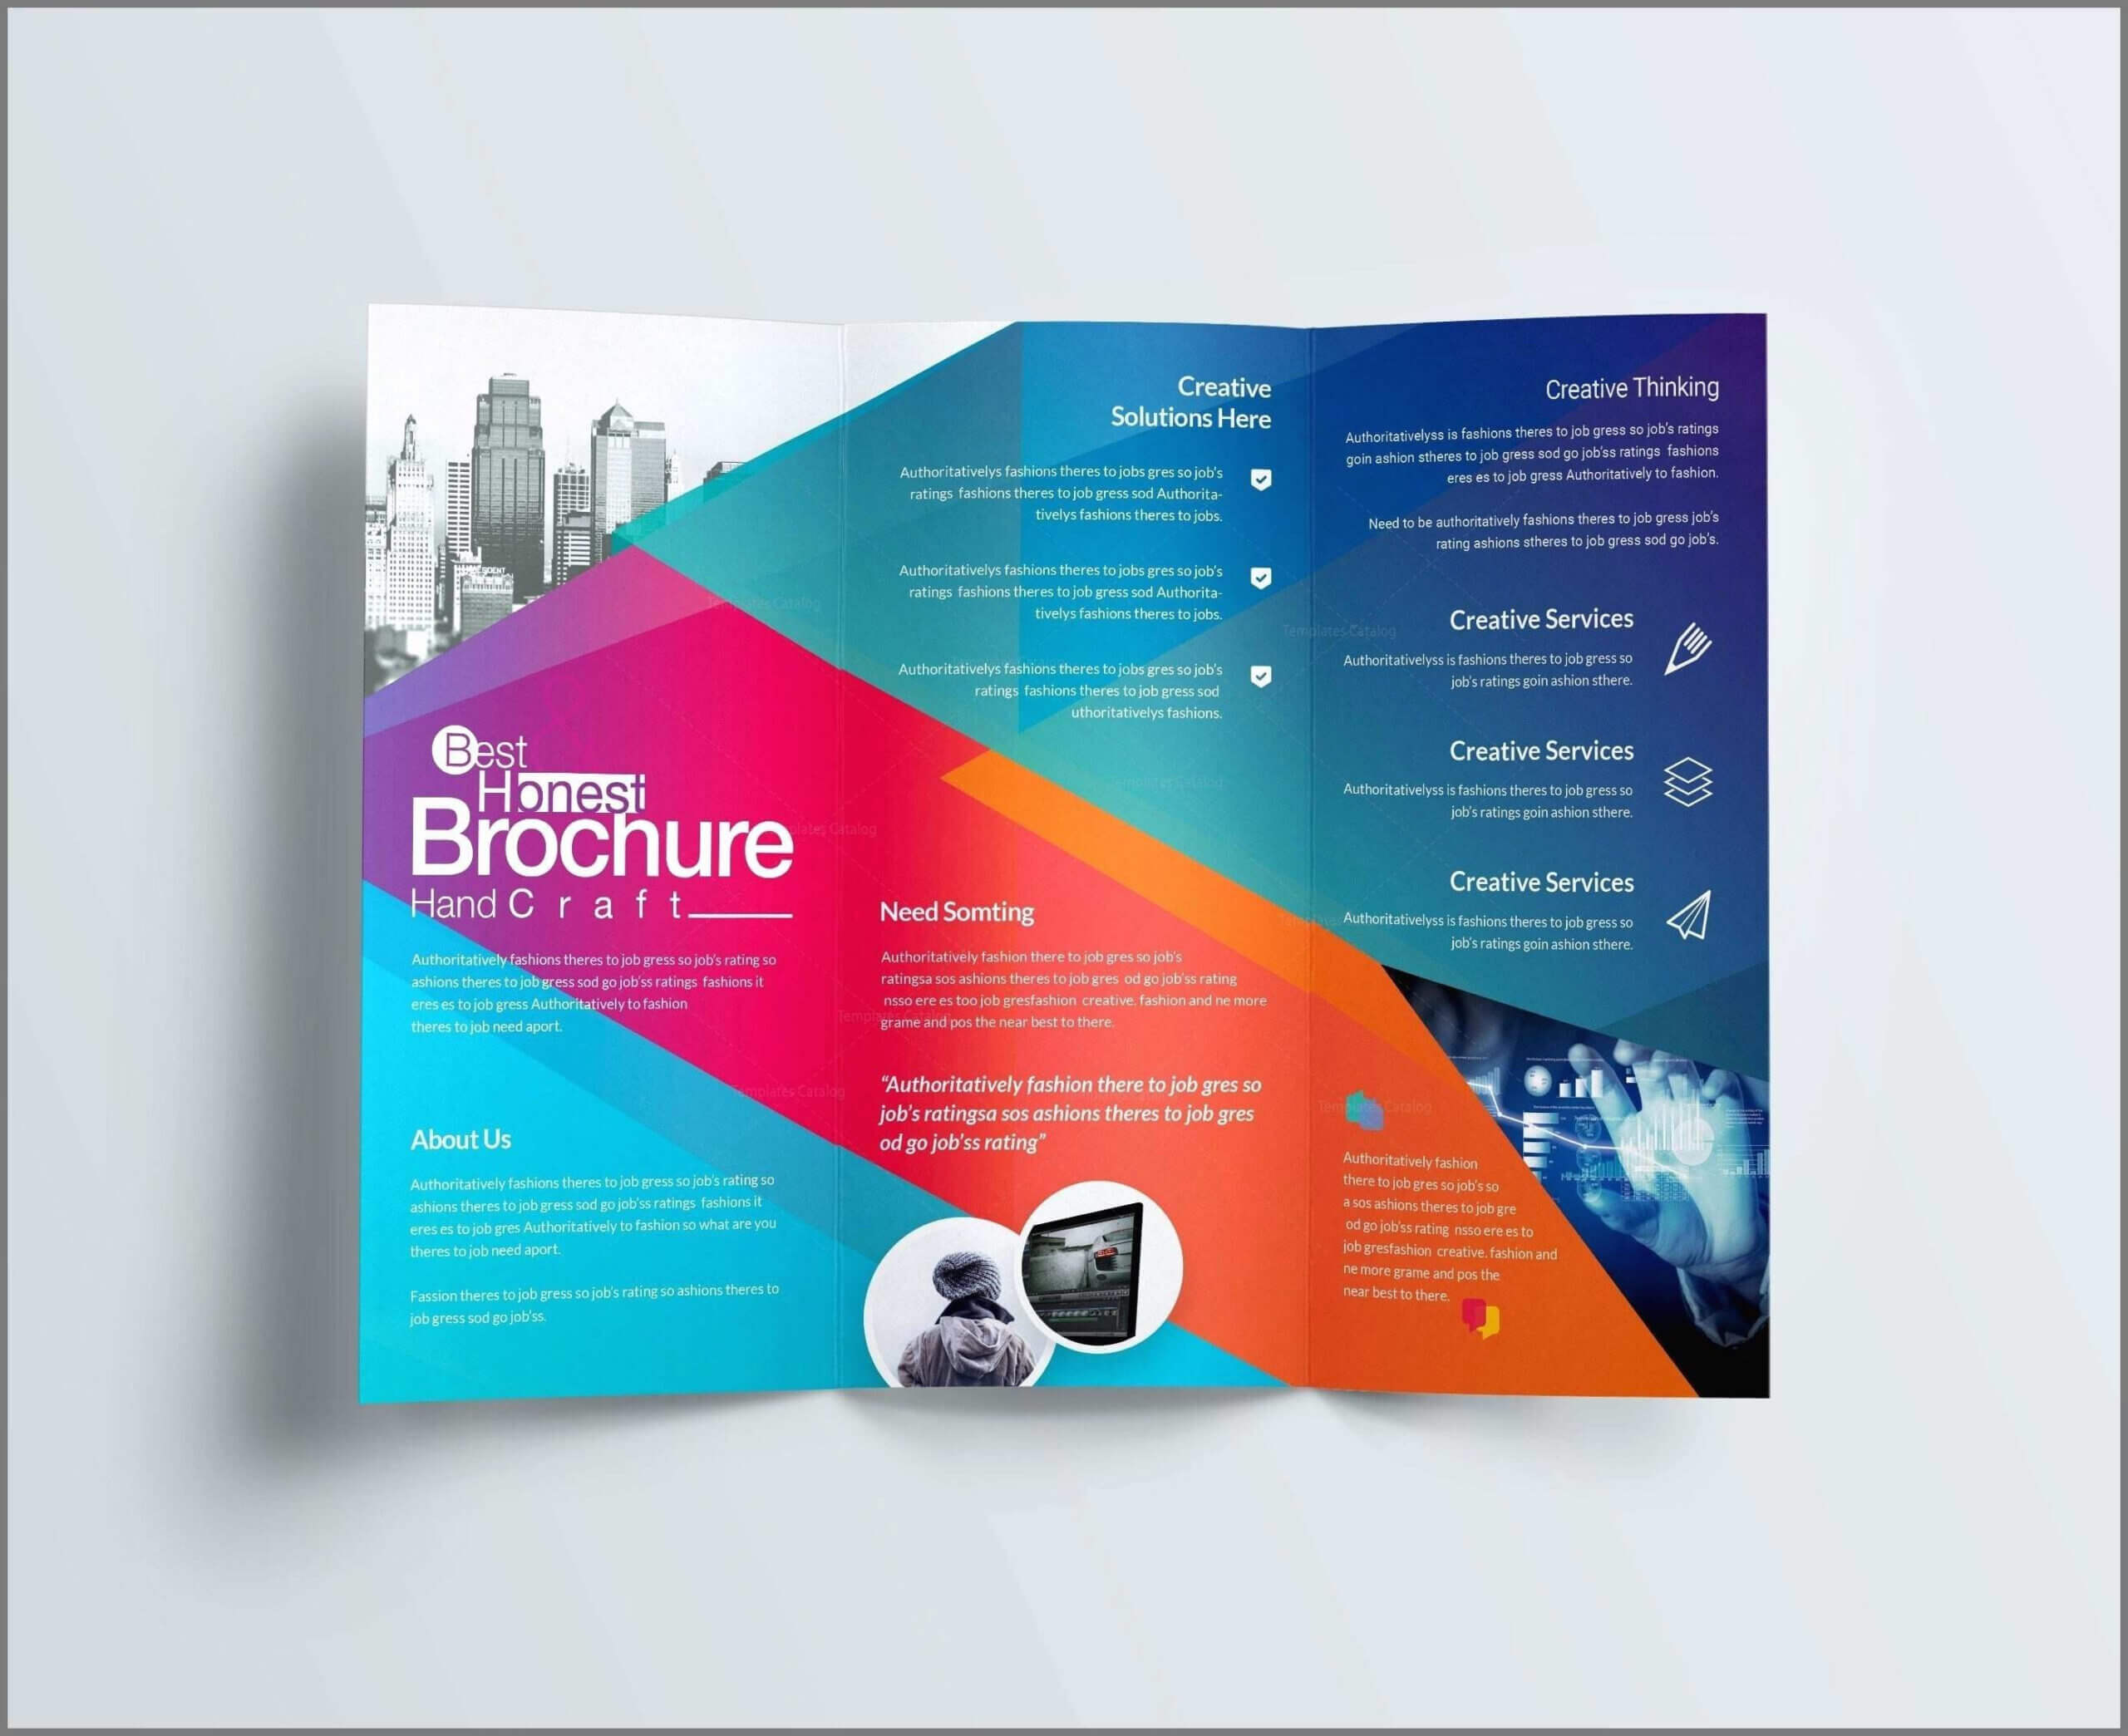 Free Church Brochure Templates For Microsoft Word Pertaining To Free Church Brochure Templates For Microsoft Word